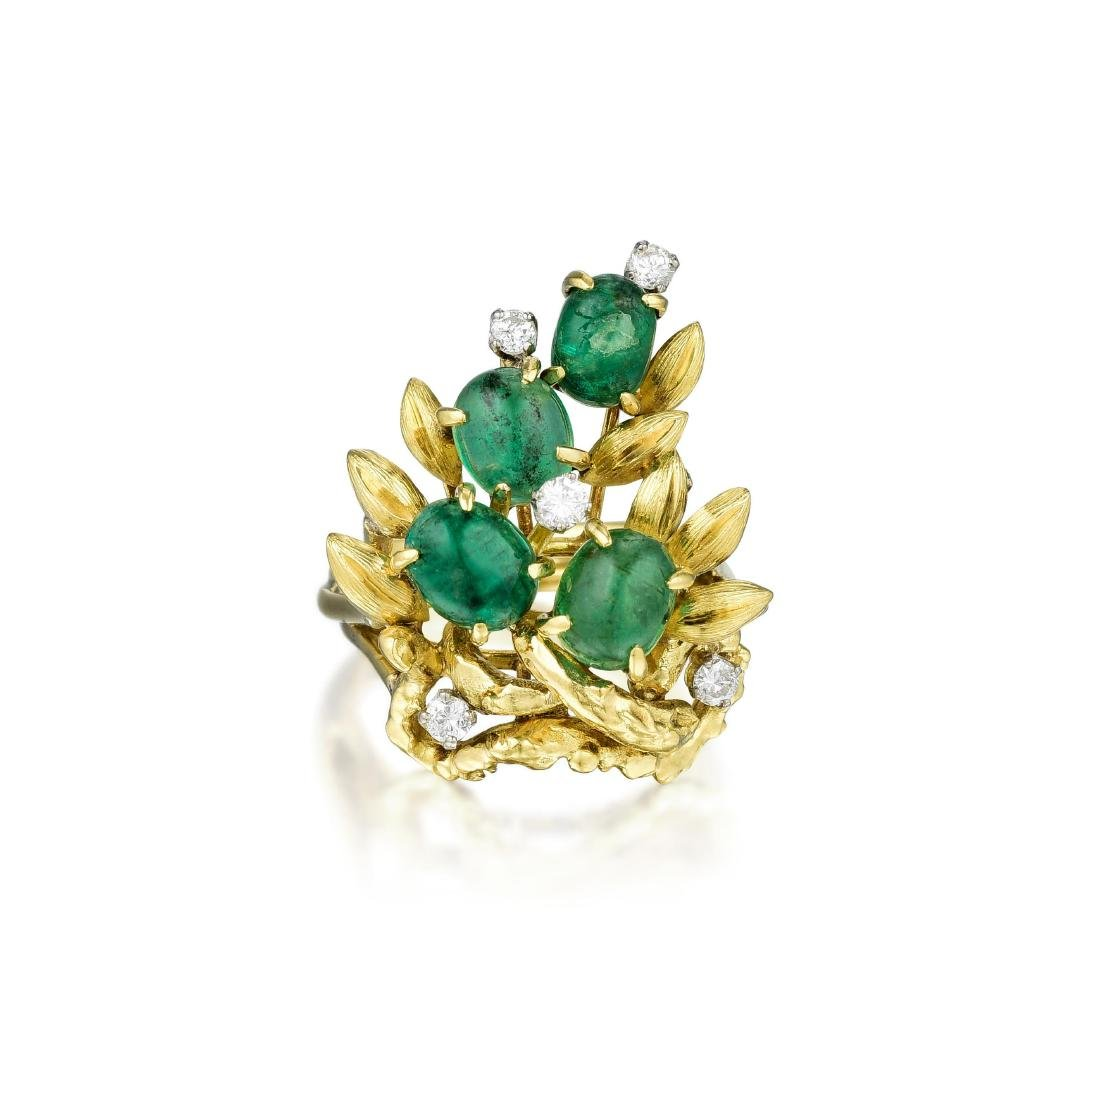 An 18K Gold Emerald and Diamond Ring